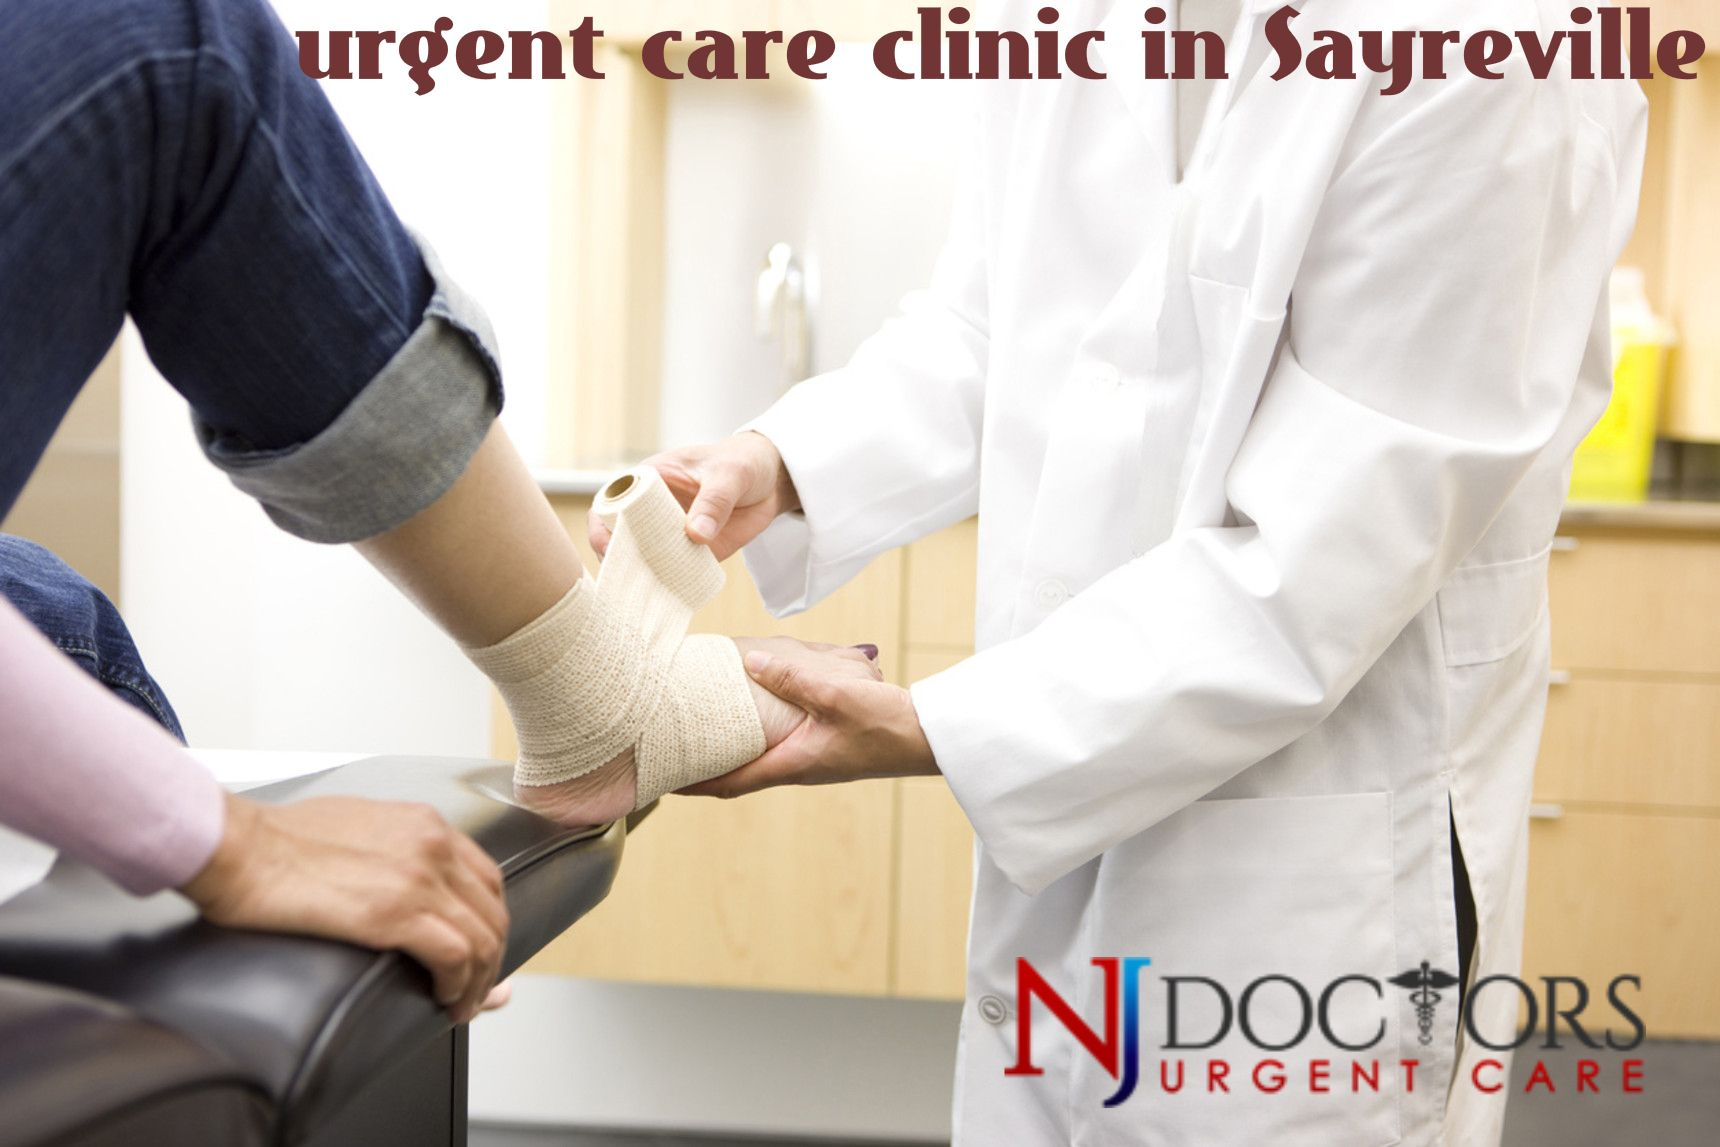 Are you looking for a permanent urgent care center to take